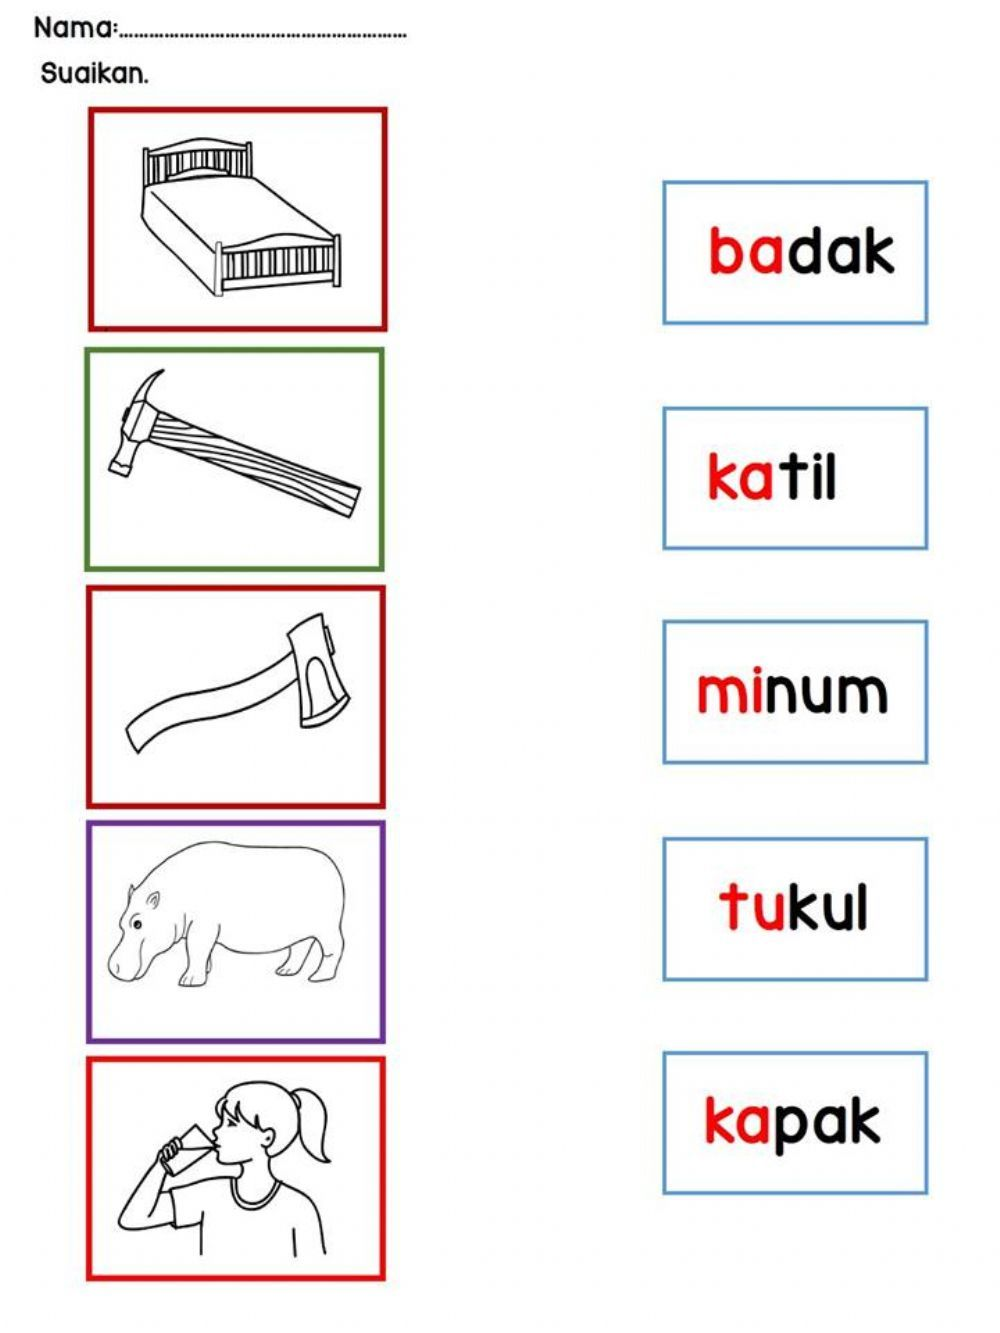 Perkataan Kvkvk Online Worksheet For Grade 3 You Can Do The Exercises Online Or Download The Worksheet As Worksheets School Worksheets Worksheets For Grade 3